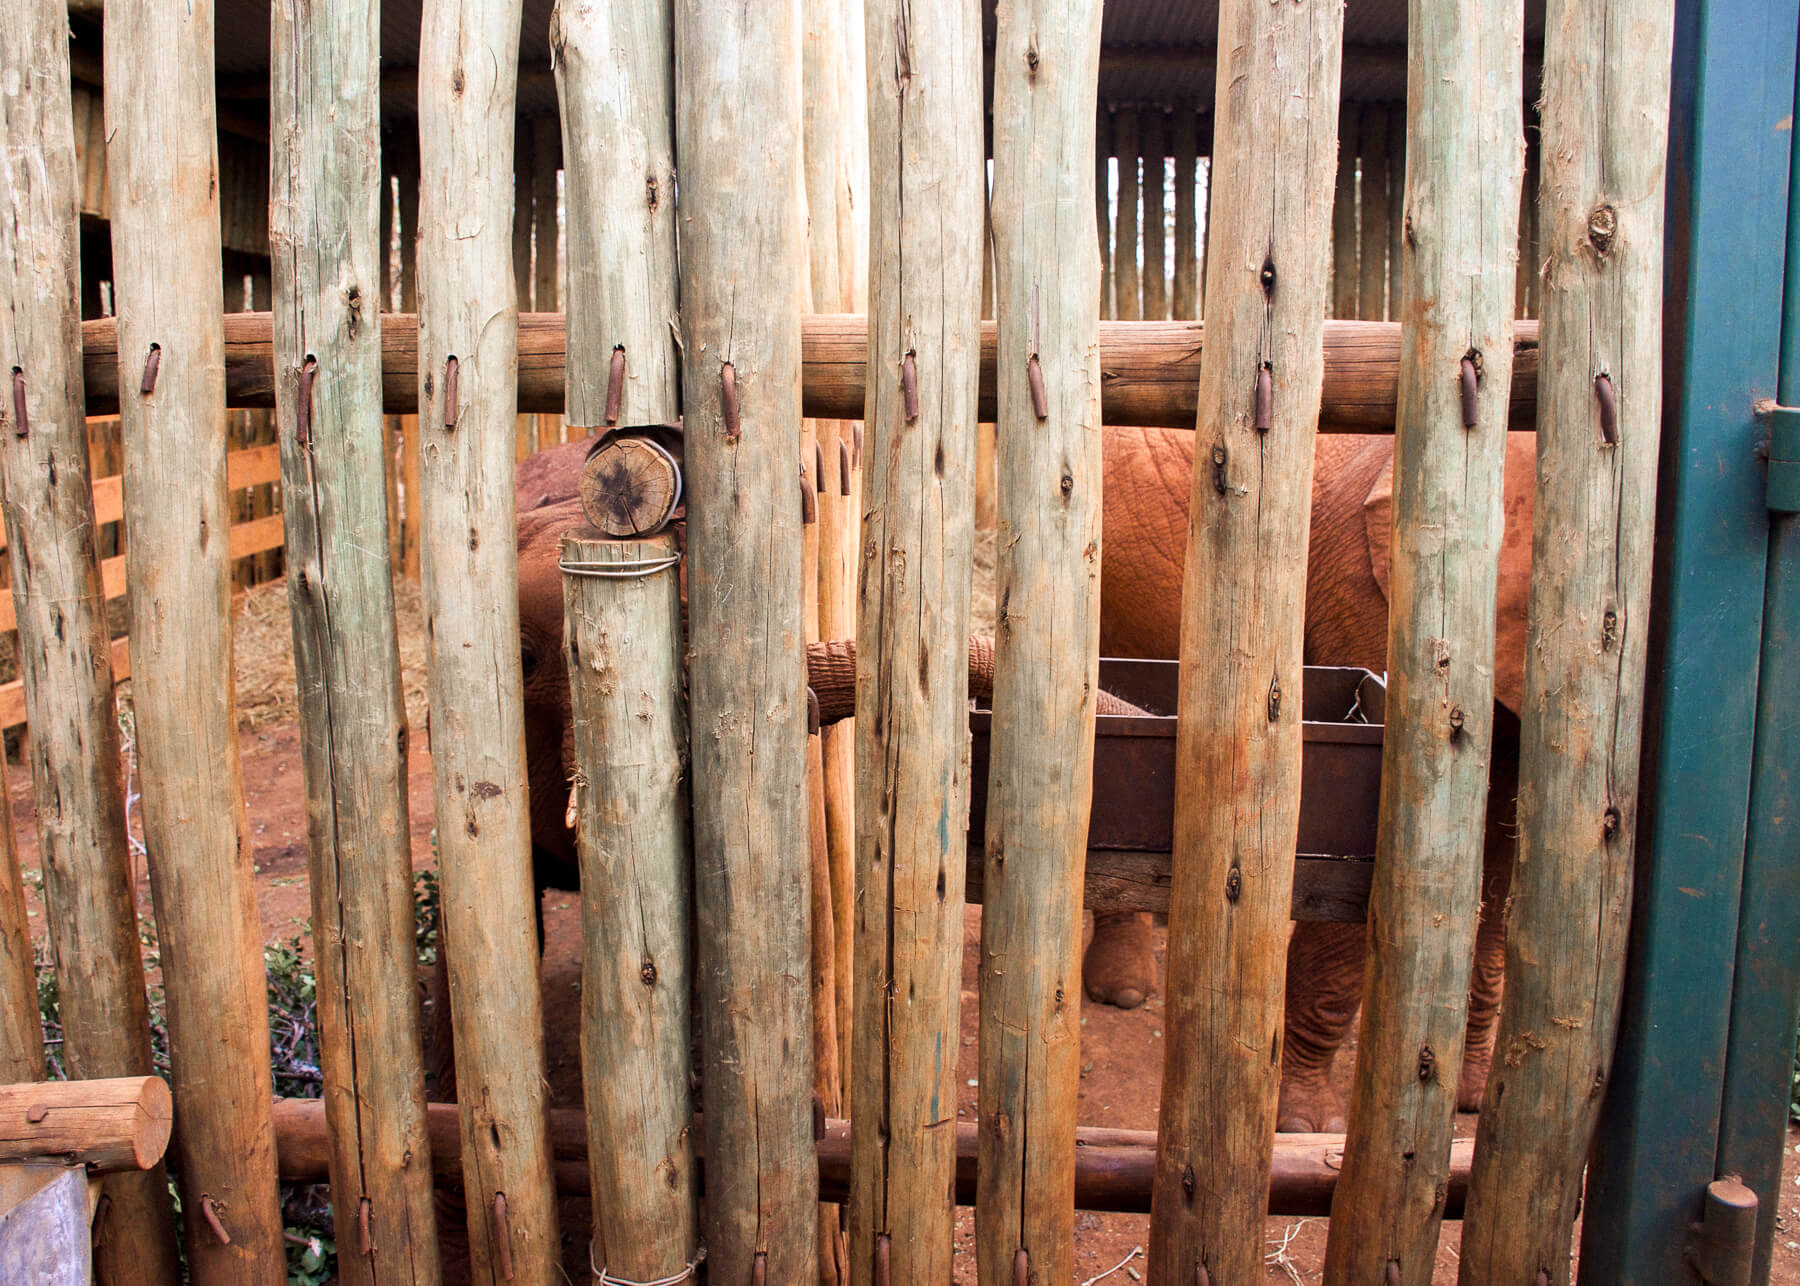 Looking through the wooden slats of the pens at David Sheldrick, and a baby elephant is stealing another elephants food with its trunk